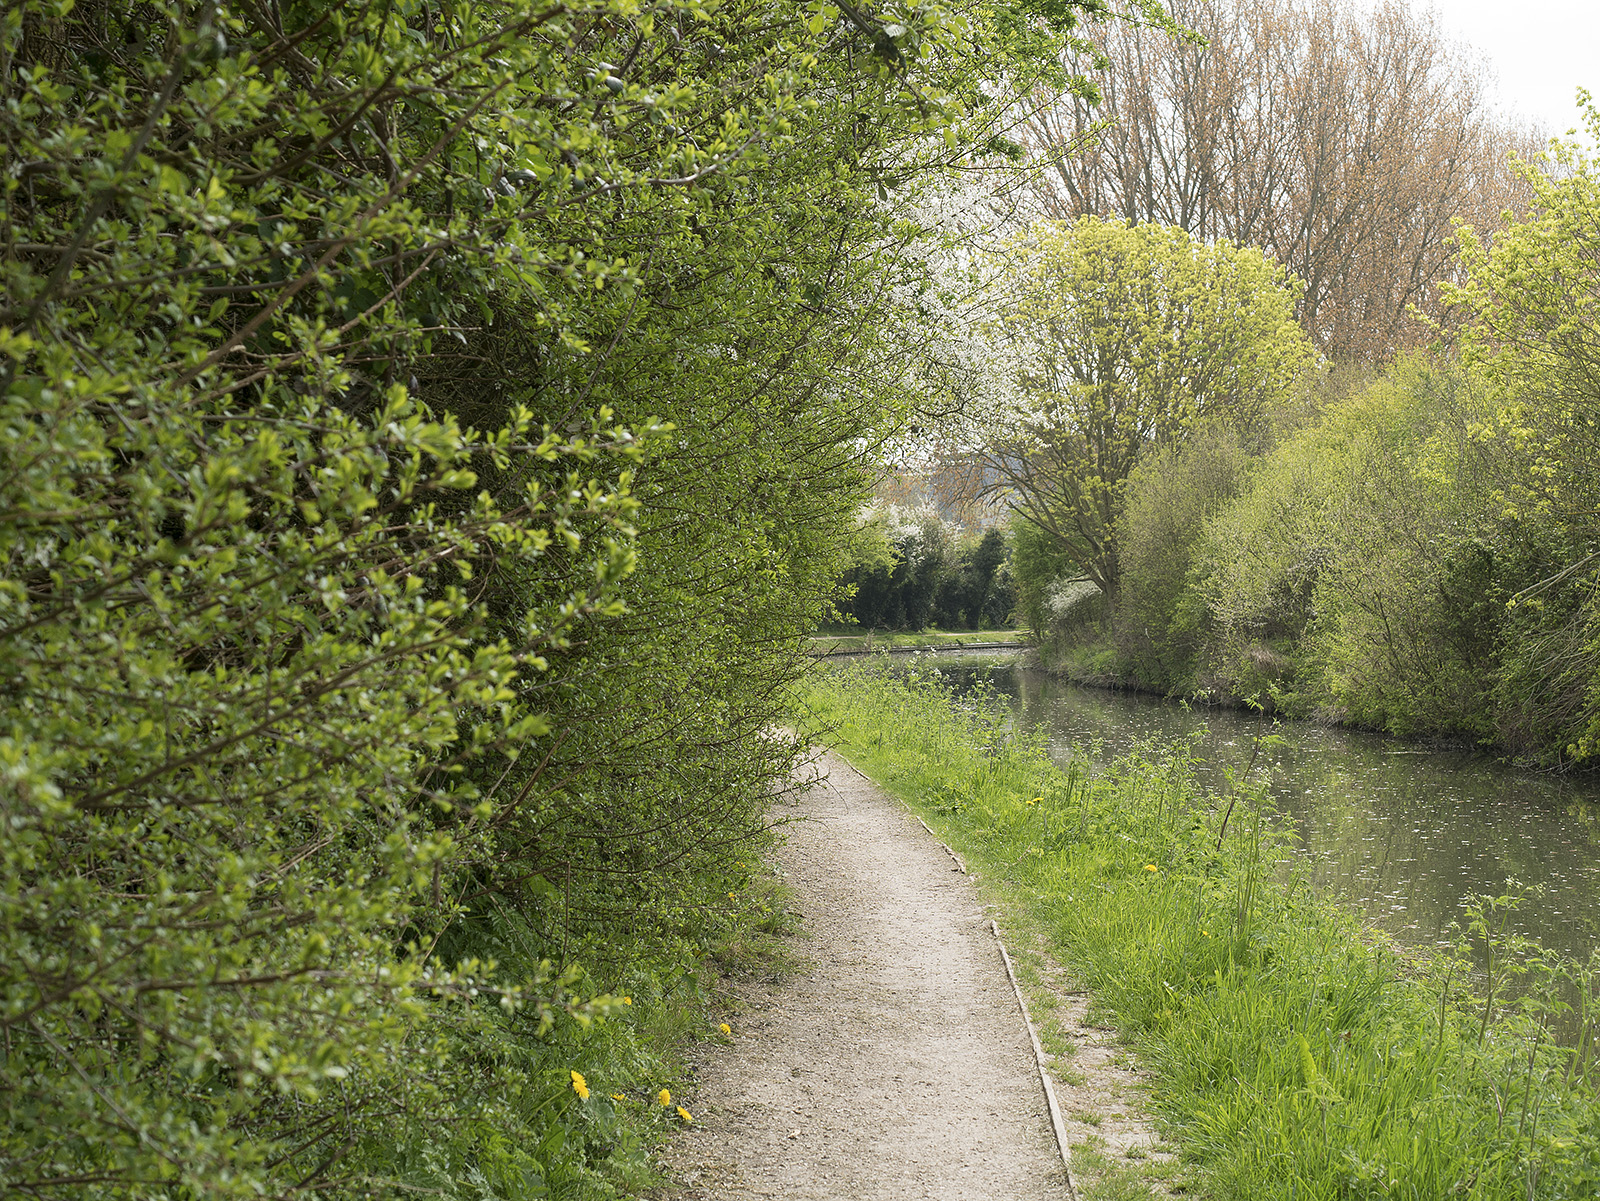 Overgrown hedges at the side impinge on the path